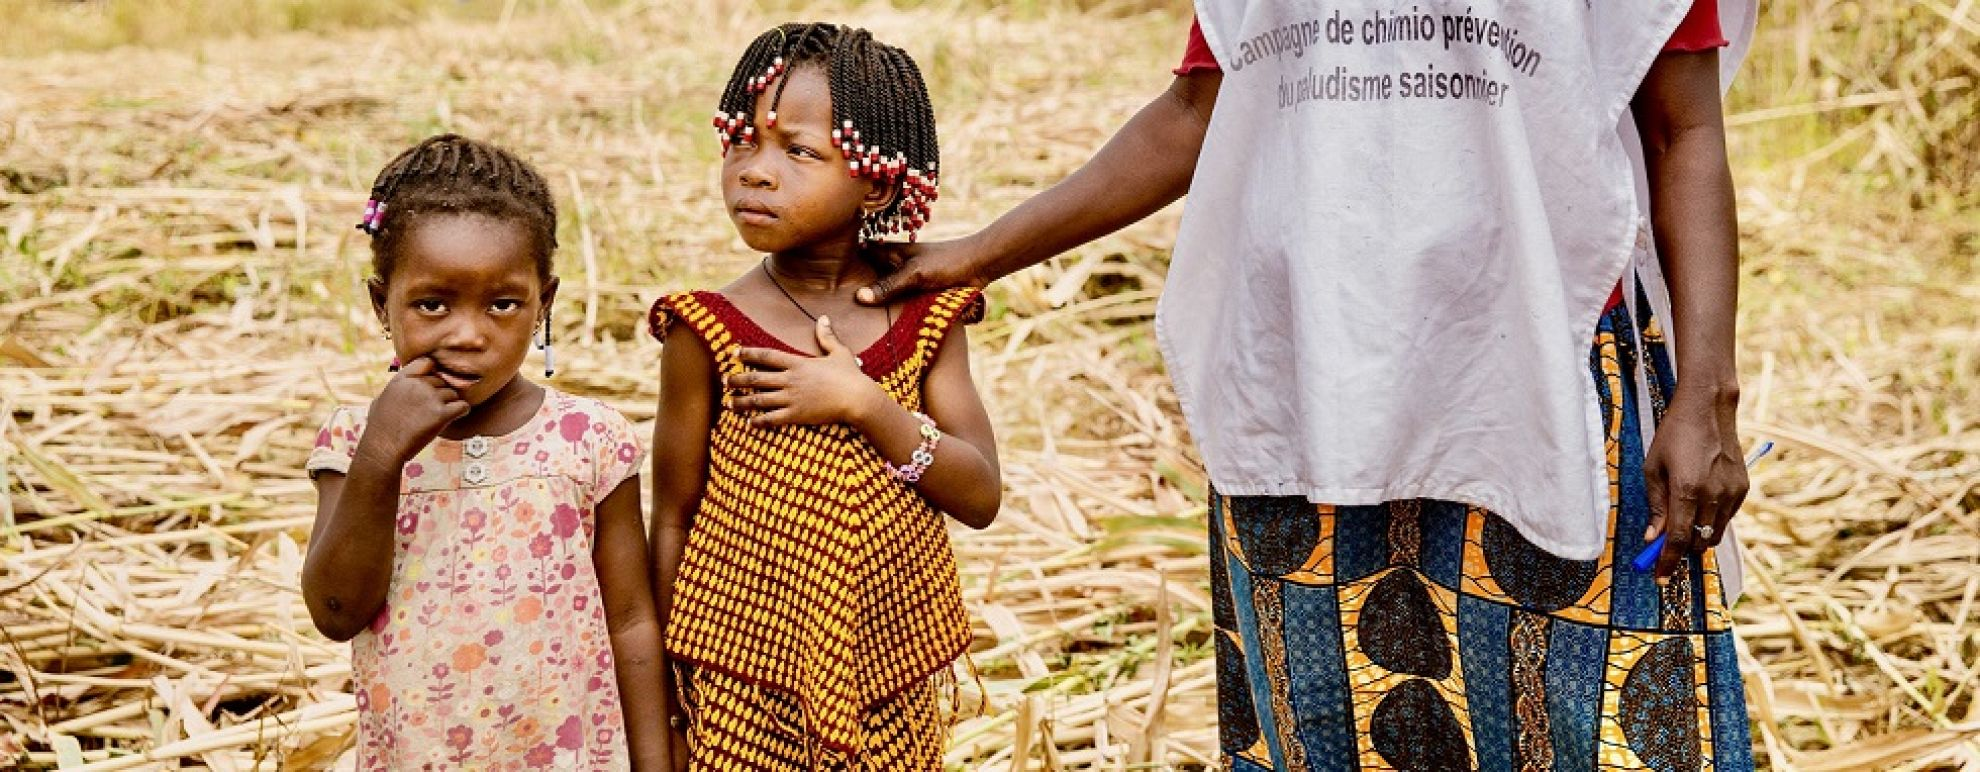 Latest News Continuing the fight to shrink the malaria map in the sahel